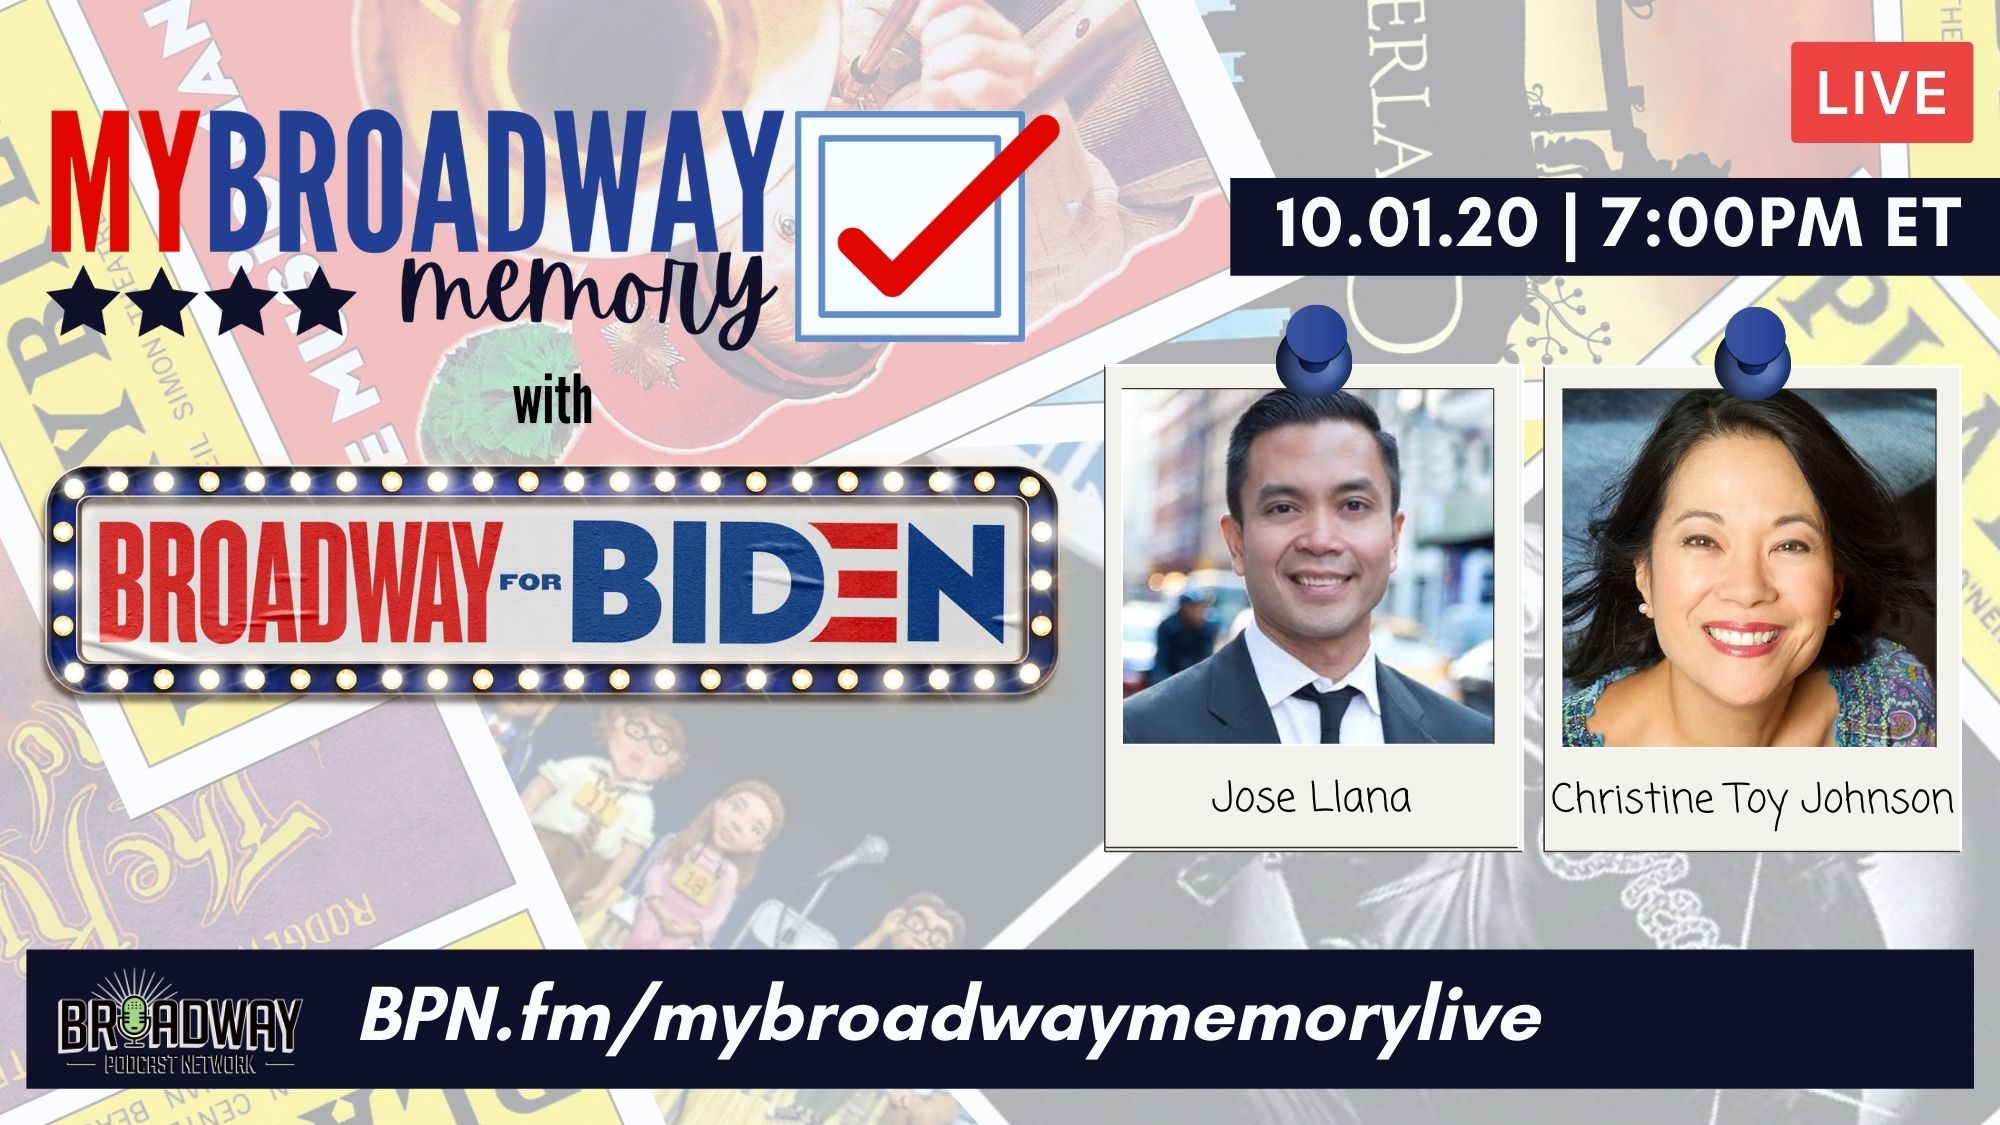 News Item: My Broadway Memory unites with Broadway for Biden